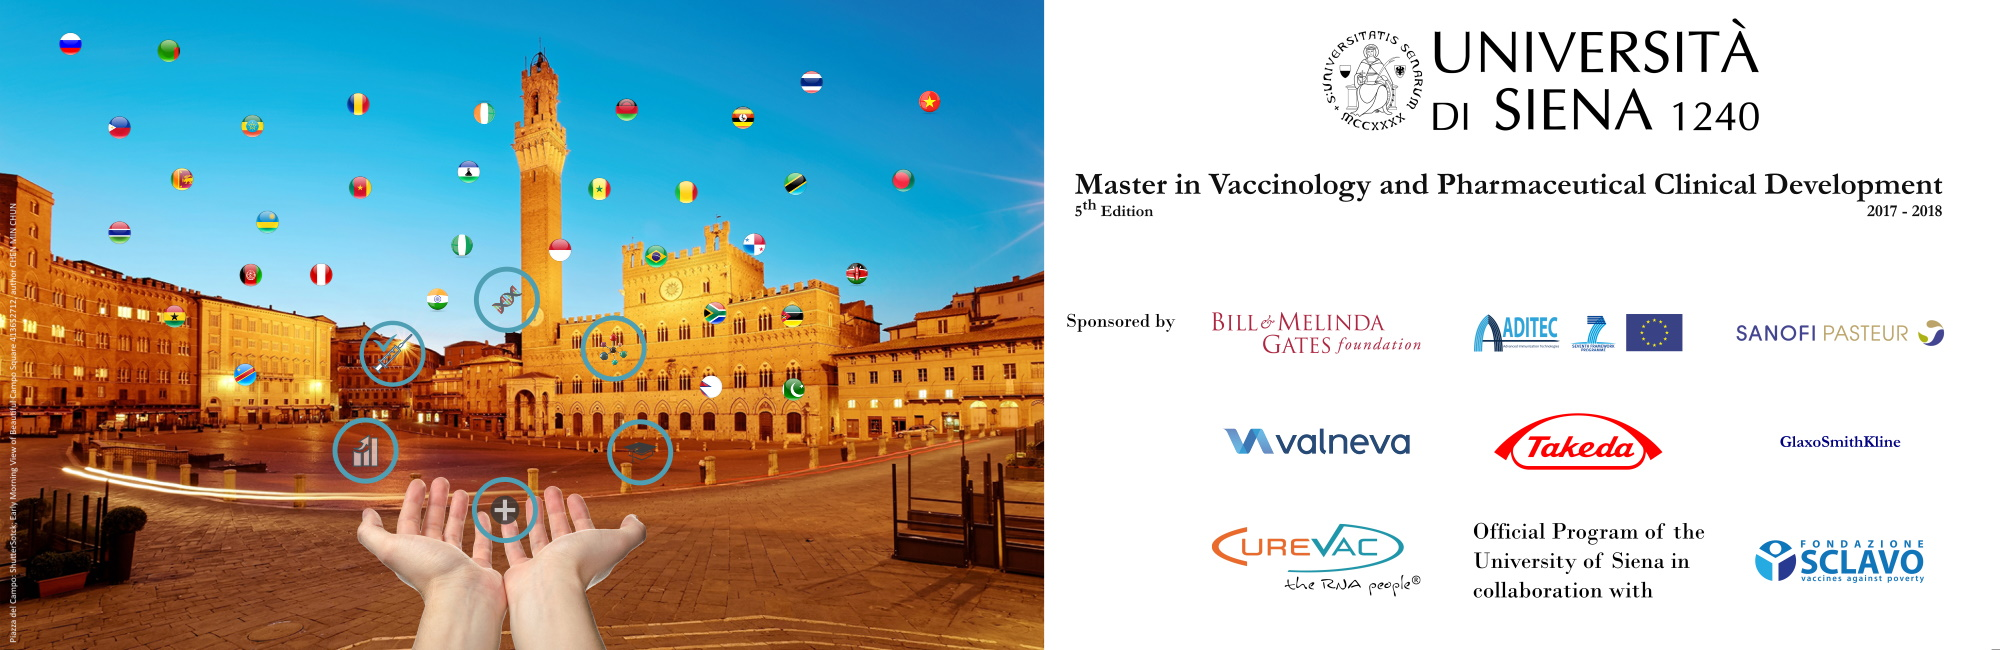 Master in Vaccinology and Pharmaceutical Clinical Development